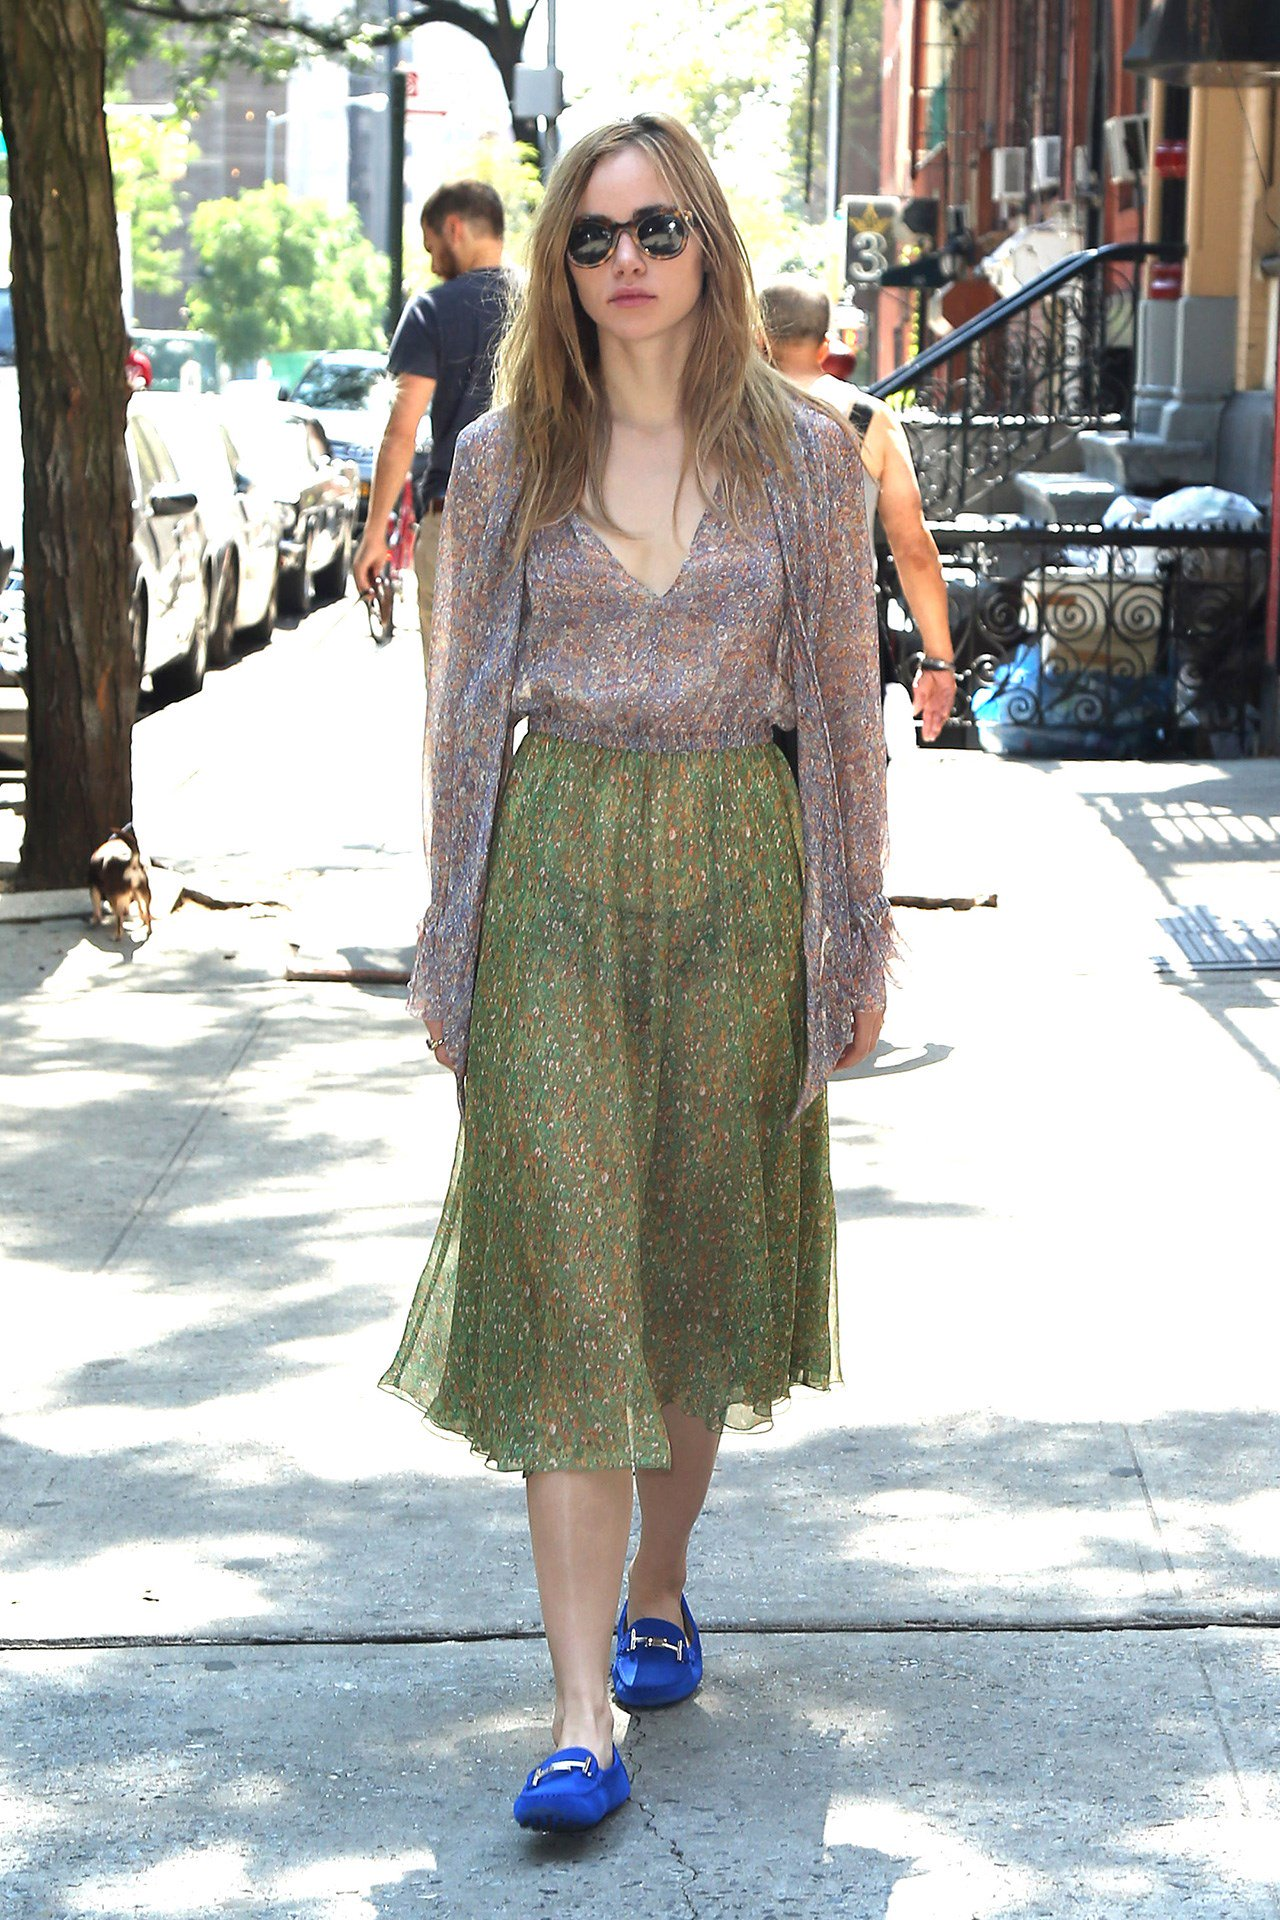 See how the stars are dressing for a summer in New York: https://t.co/3i8Dm01Mof https://t.co/ngNUmGWRCG